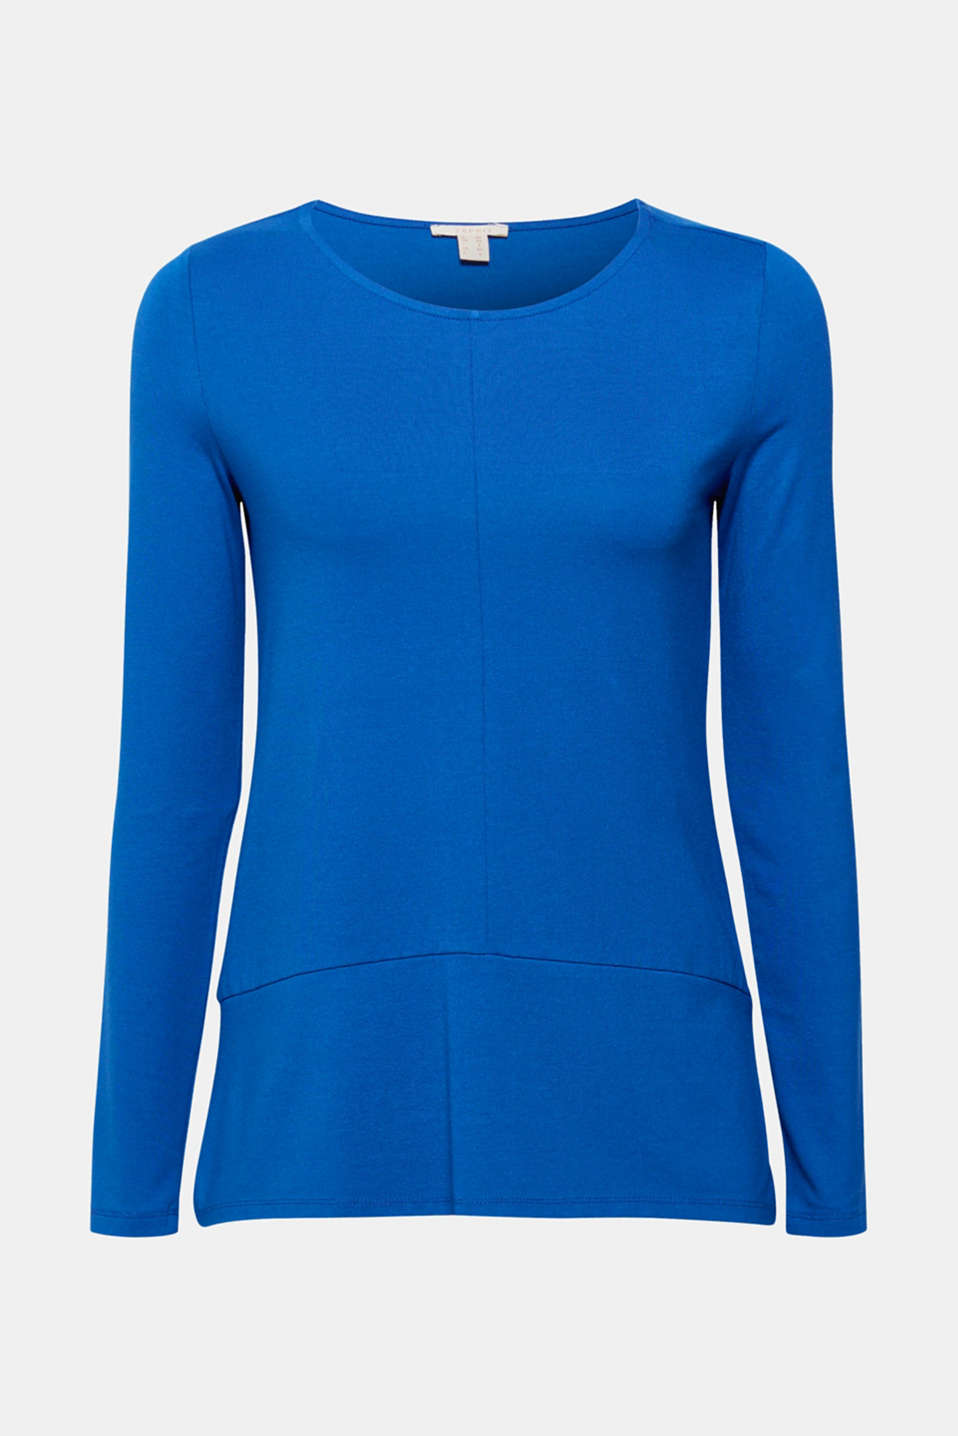 Trendy A-line cut: The set-in, slightly flared hem on this stretch long sleeve top accentuates the silhouette even further.